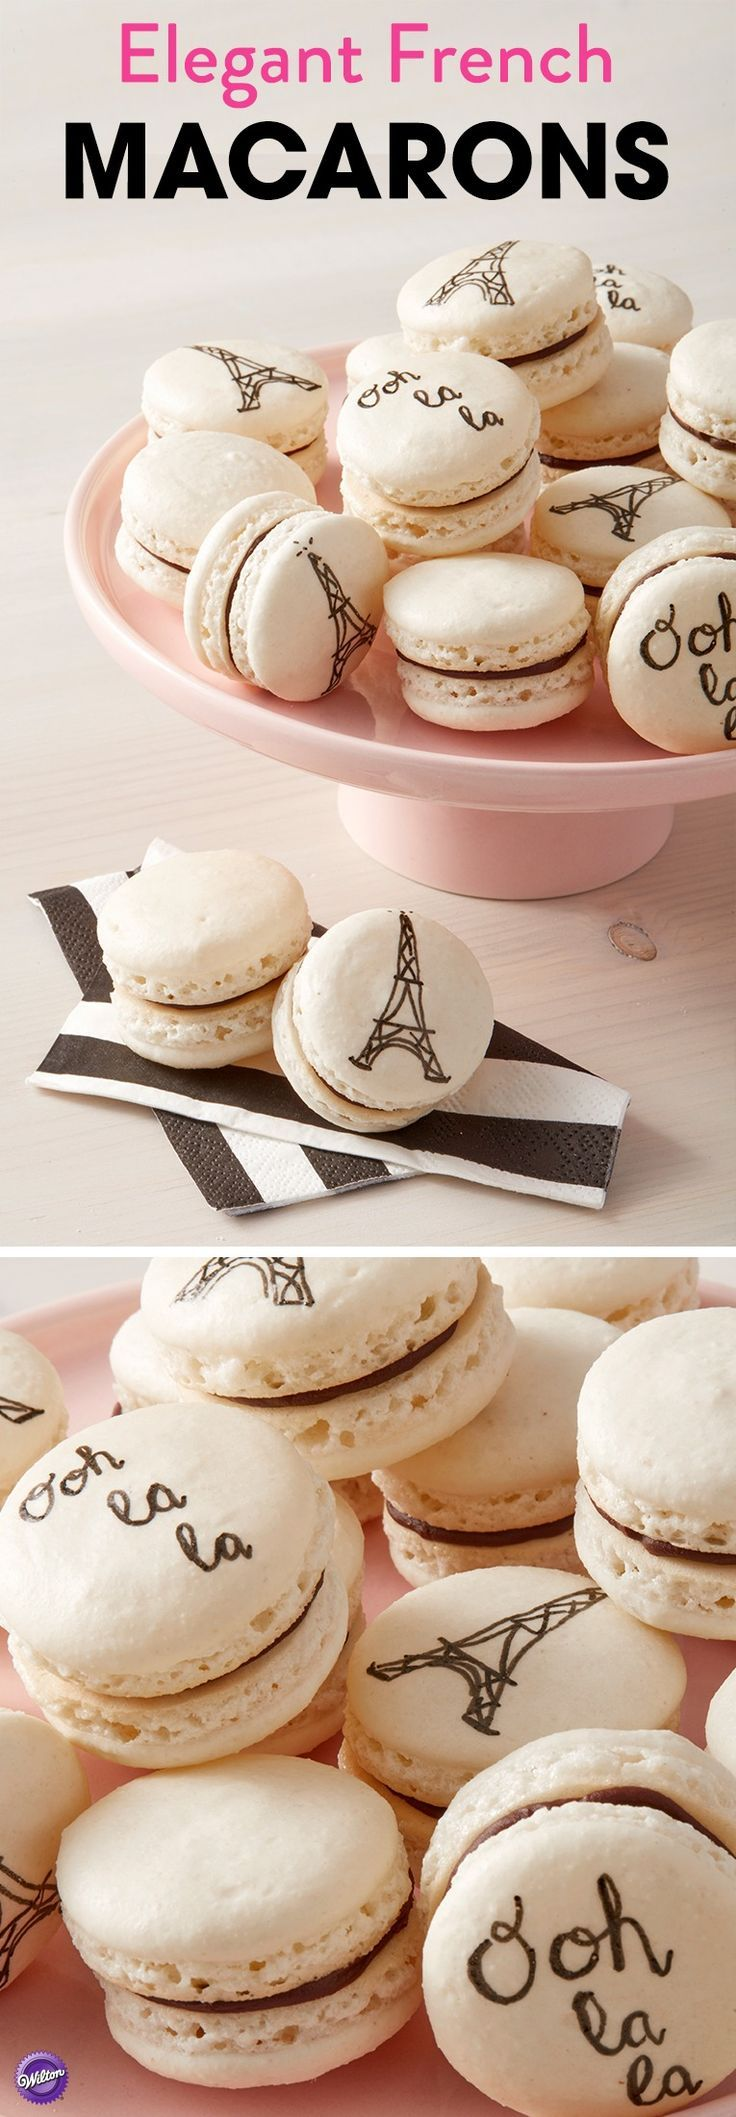 """A sweet treat that will give you a little taste of Parisian living, this easy Elegant French Macaron recipe is best enjoyed with a nice cup of cappuccino or café au lait. Customize your macarons using the FoodWriter Edible Color Markers. Draw pictures of the Eiffel Tower, fun French phrases like """"Ooh la la!"""" or write names or dates and hand these out as edible wedding favors. A great treat for entertaining, these Elegant French Macarons are sure to become a family favorite!"""